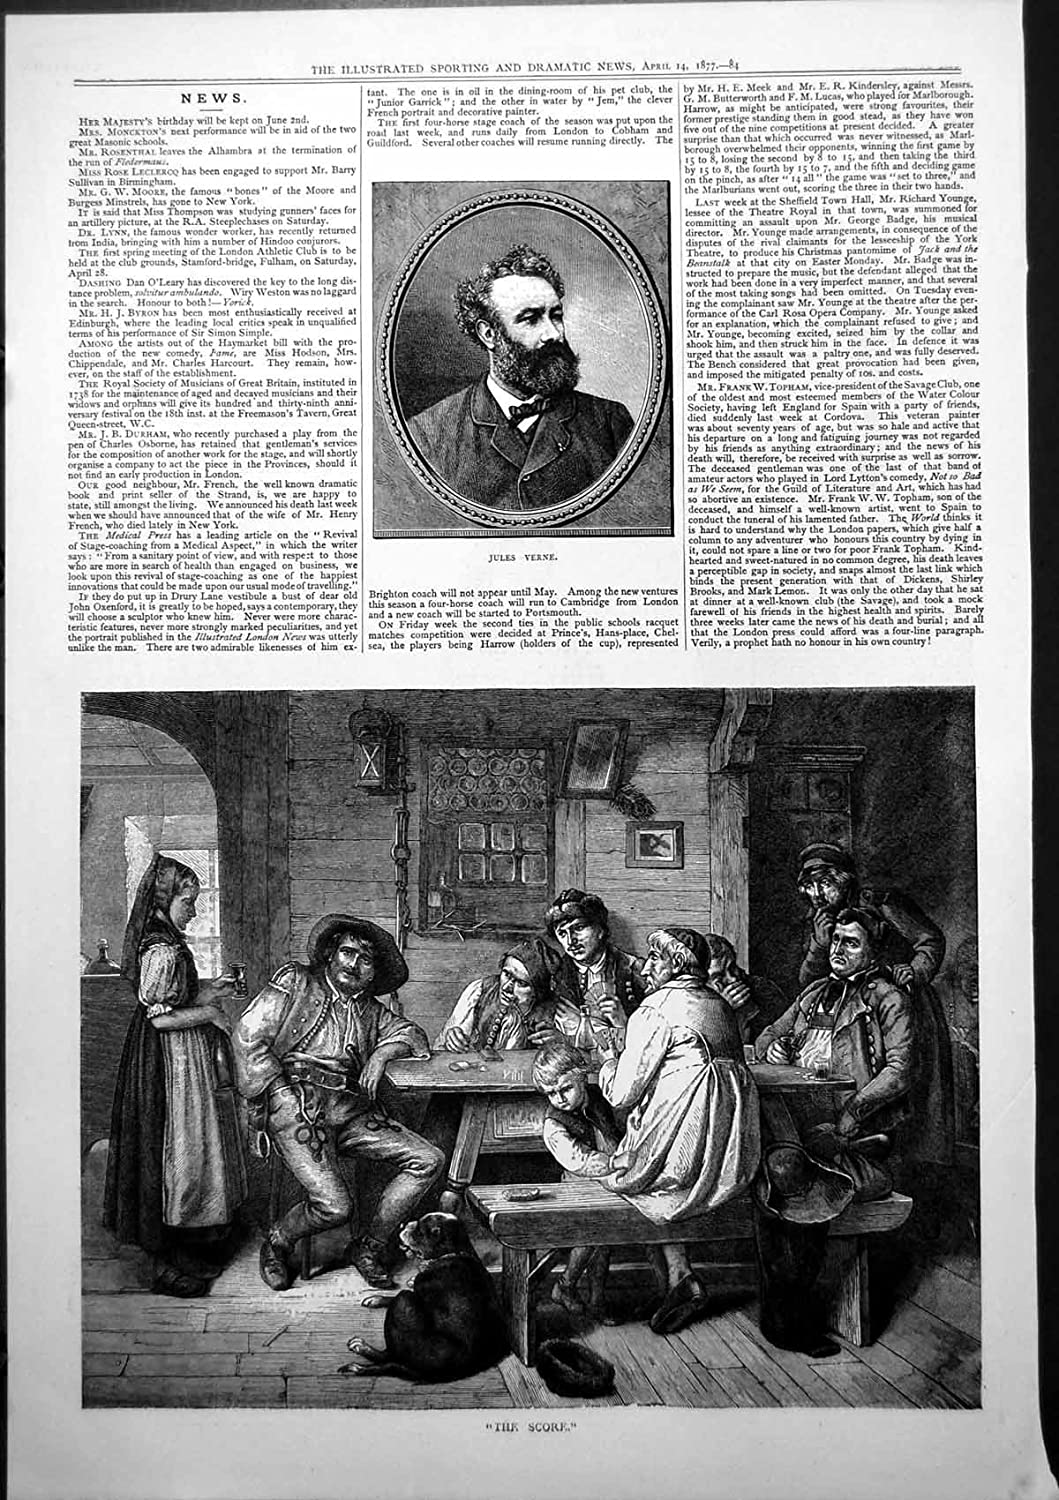 Jules Verne The Score Men Drinking Playing Cards Table Woman 1877 735J779 old-print